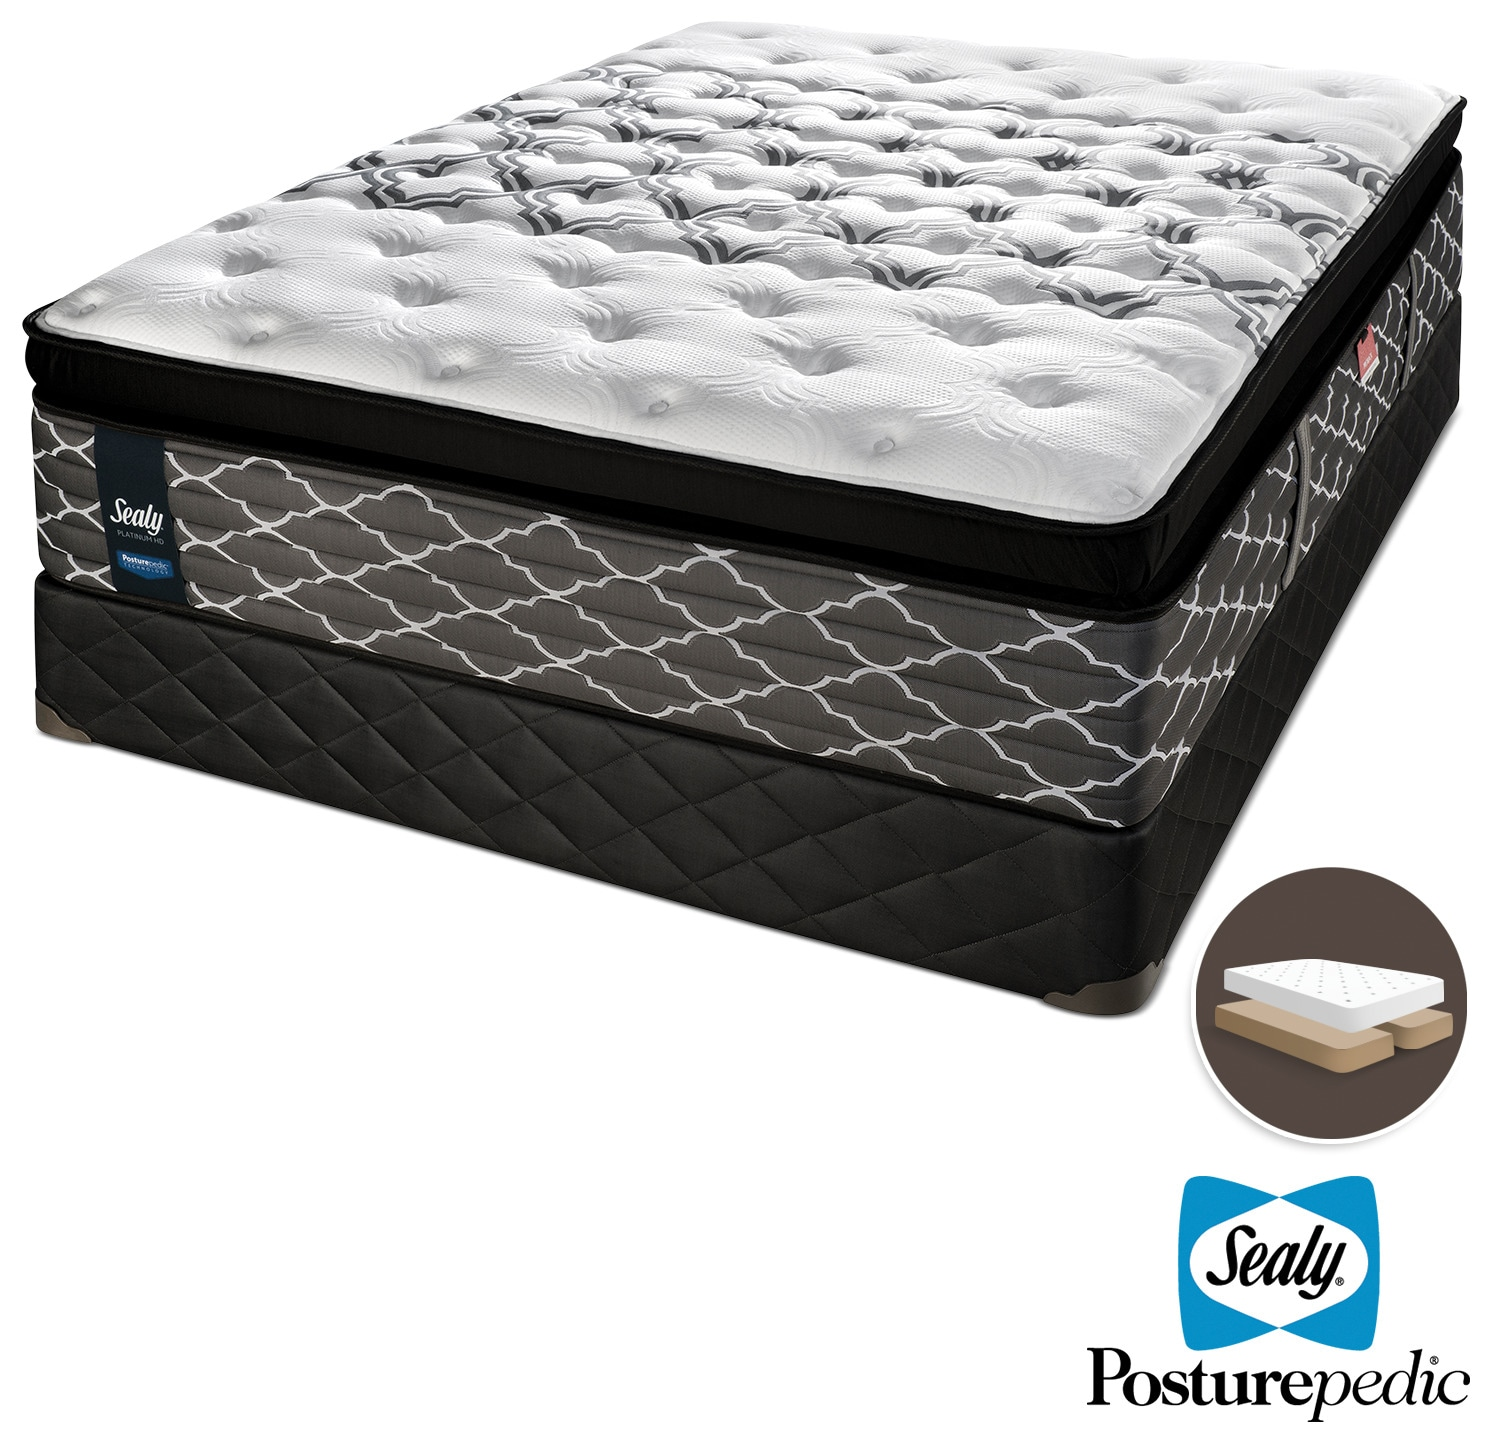 Mattresses and Bedding - Sealy Endless Night Hybrid Cushion Firm Queen Mattress and Split Boxspring Set